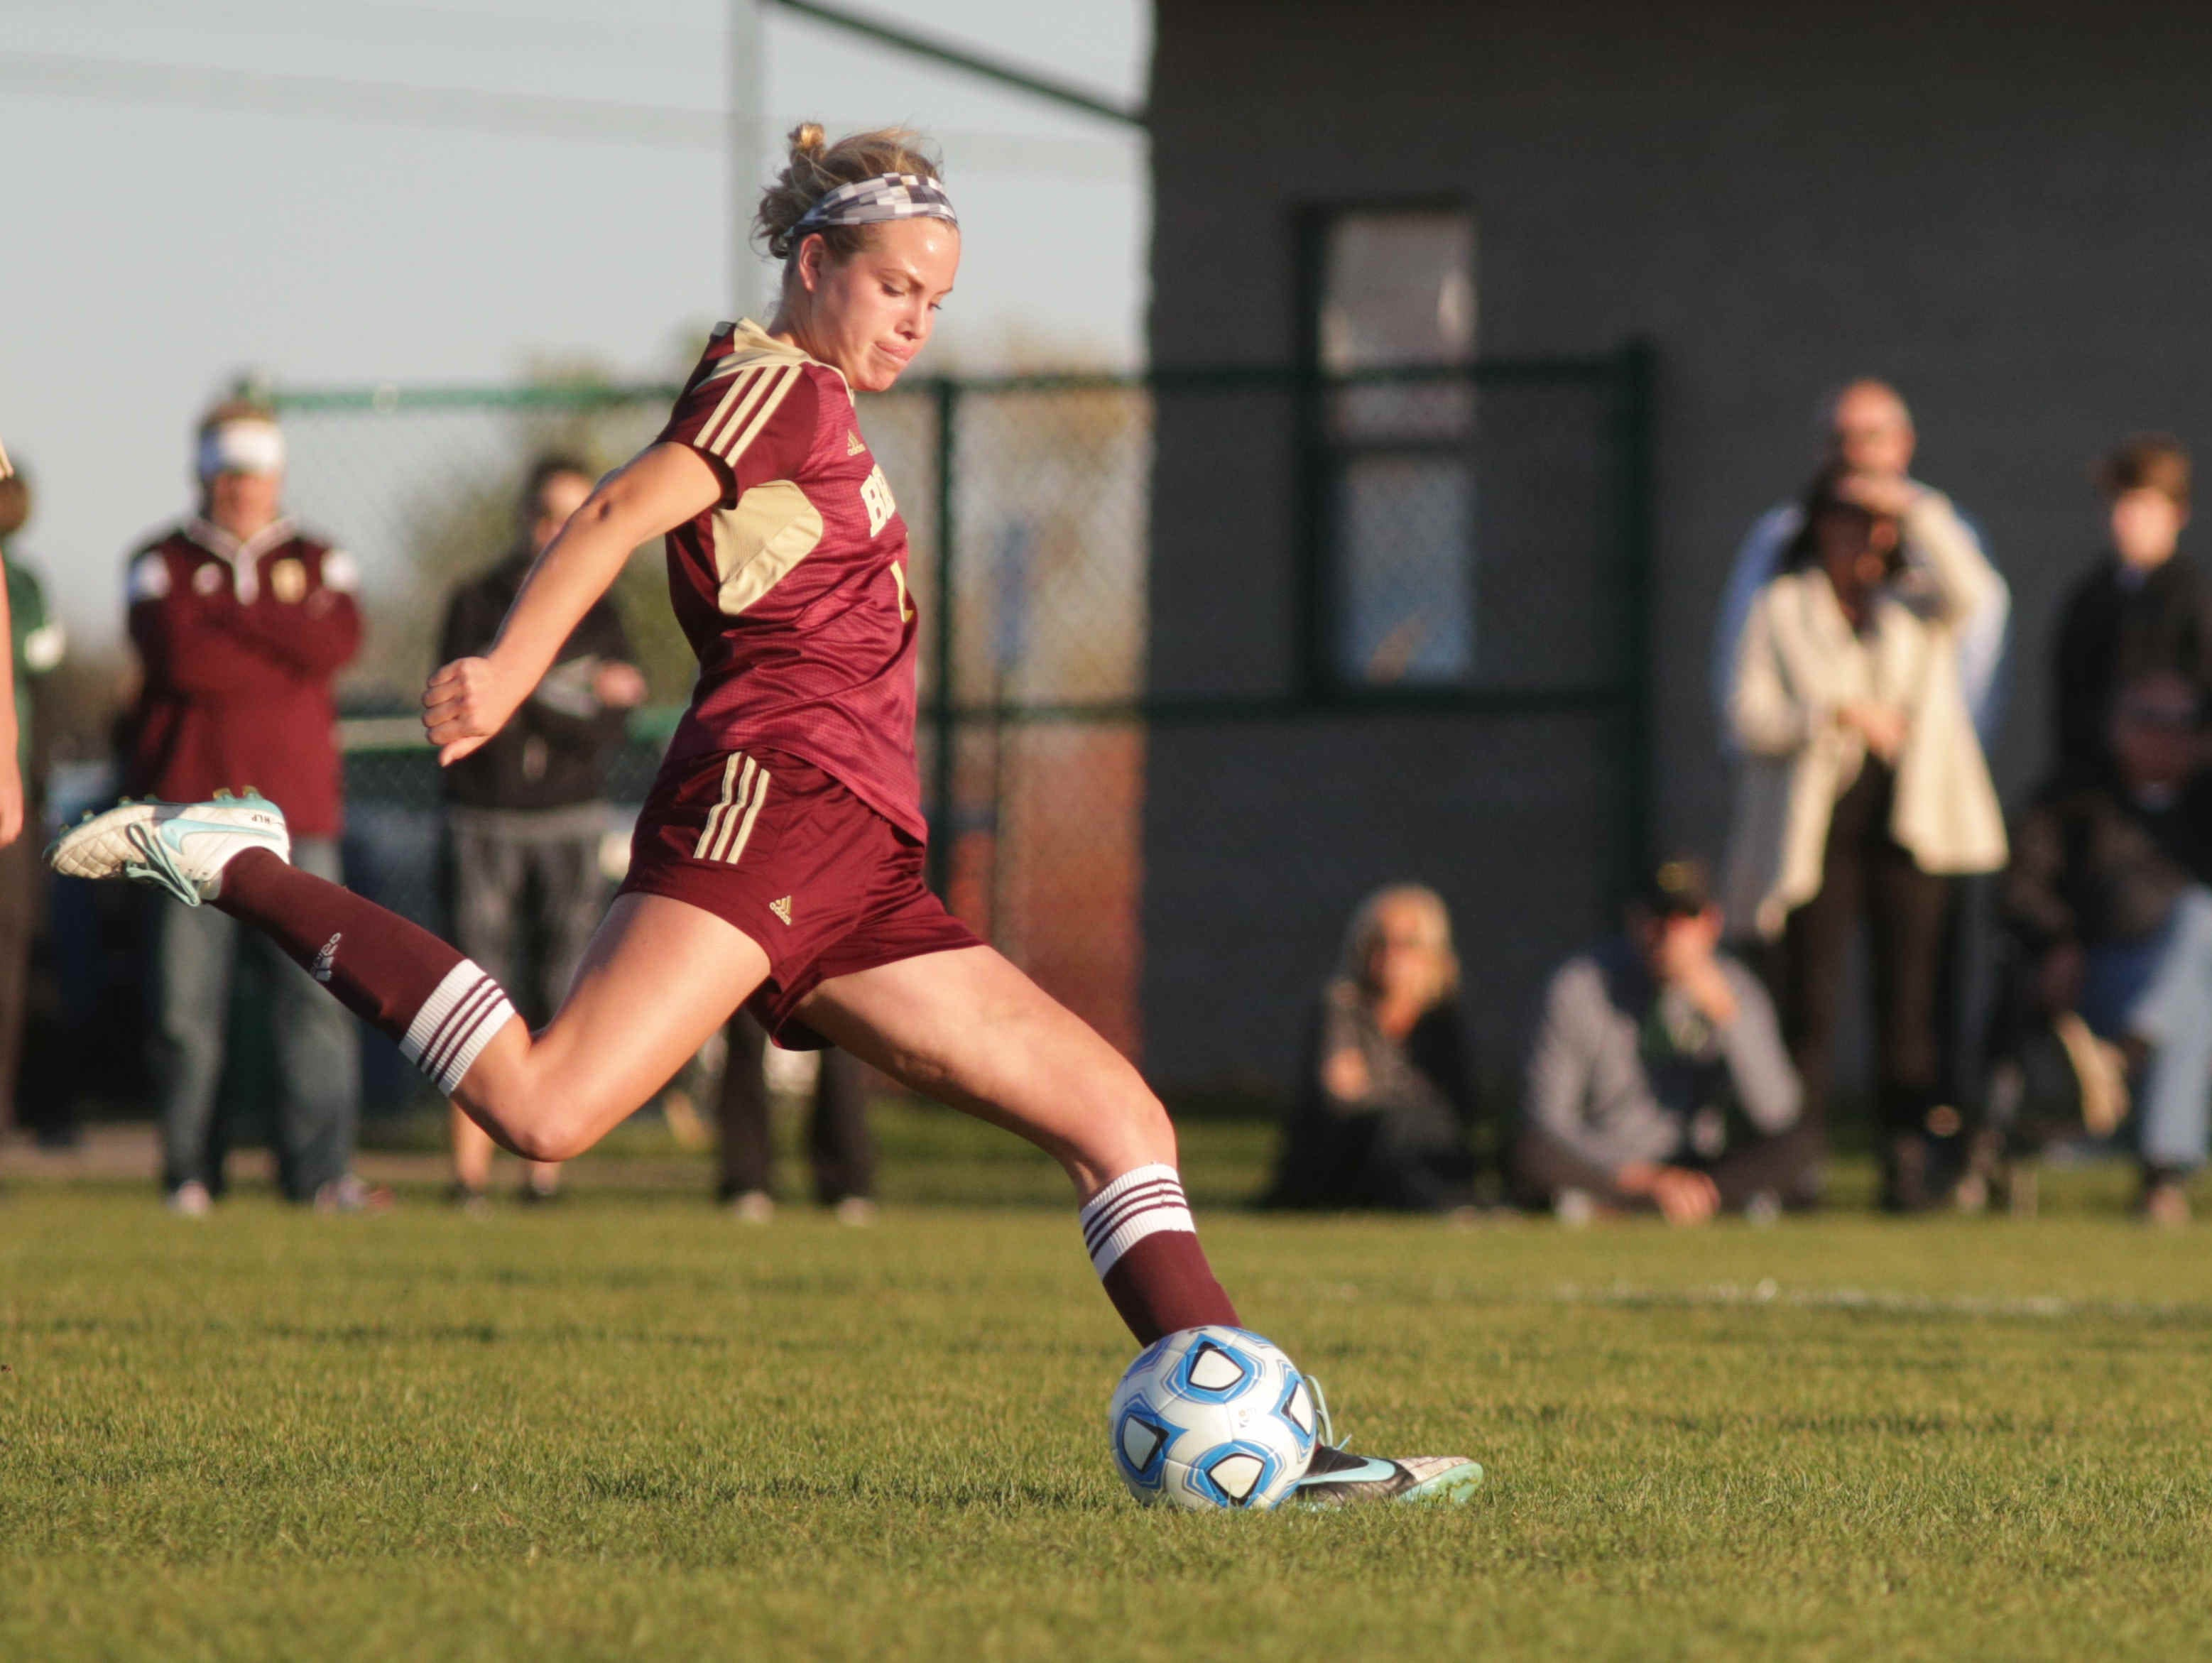 Brebeuf's number 11, Alia Martin tries for a second goal during Girls High School Regionals, at Zionsville Youth Soccer Association, Wednesday October 14th, 2015. Brebeuf defeated Cathedral 3 to 1.